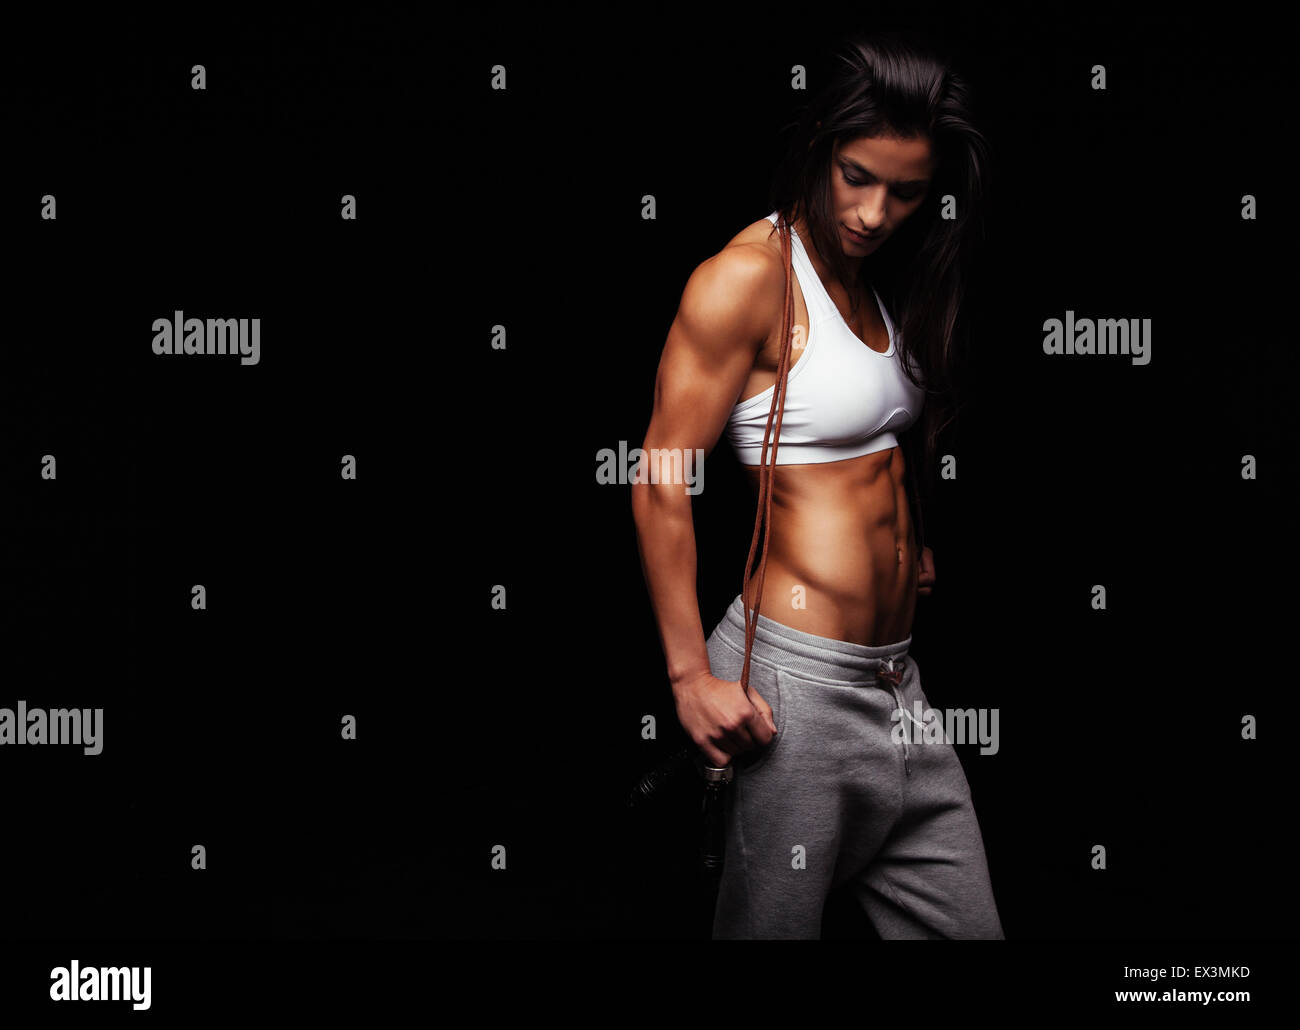 Shot of young female exercises with a jump rope looking down. Muscular woman with skipping ropes against black background, - Stock Image